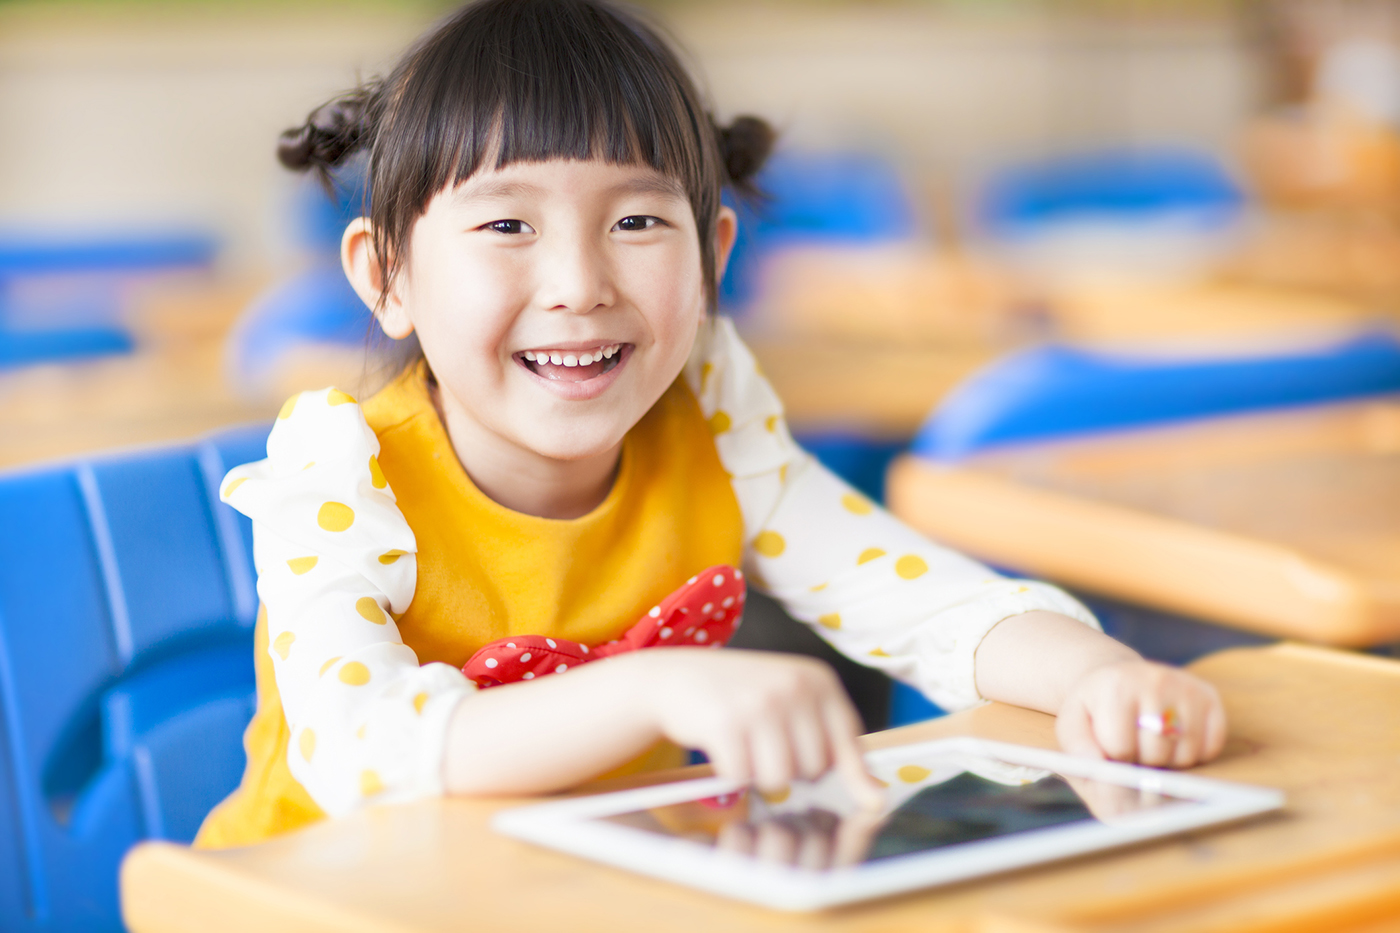 Happy girl on tablet - photo by iStock/Tomwang112